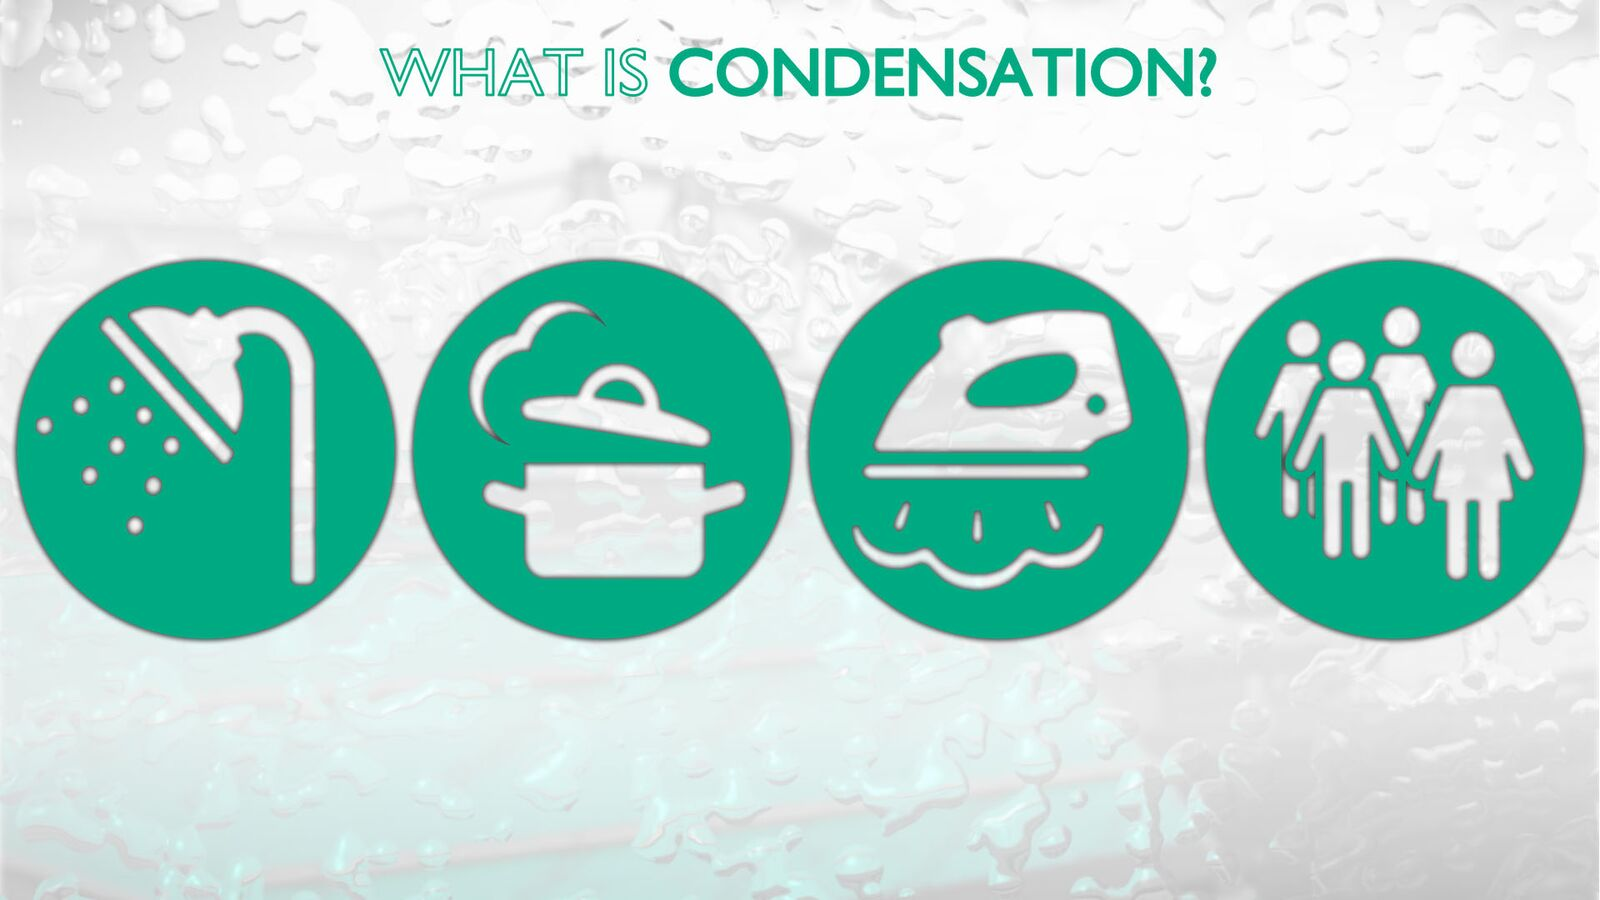 Examples of condensation.